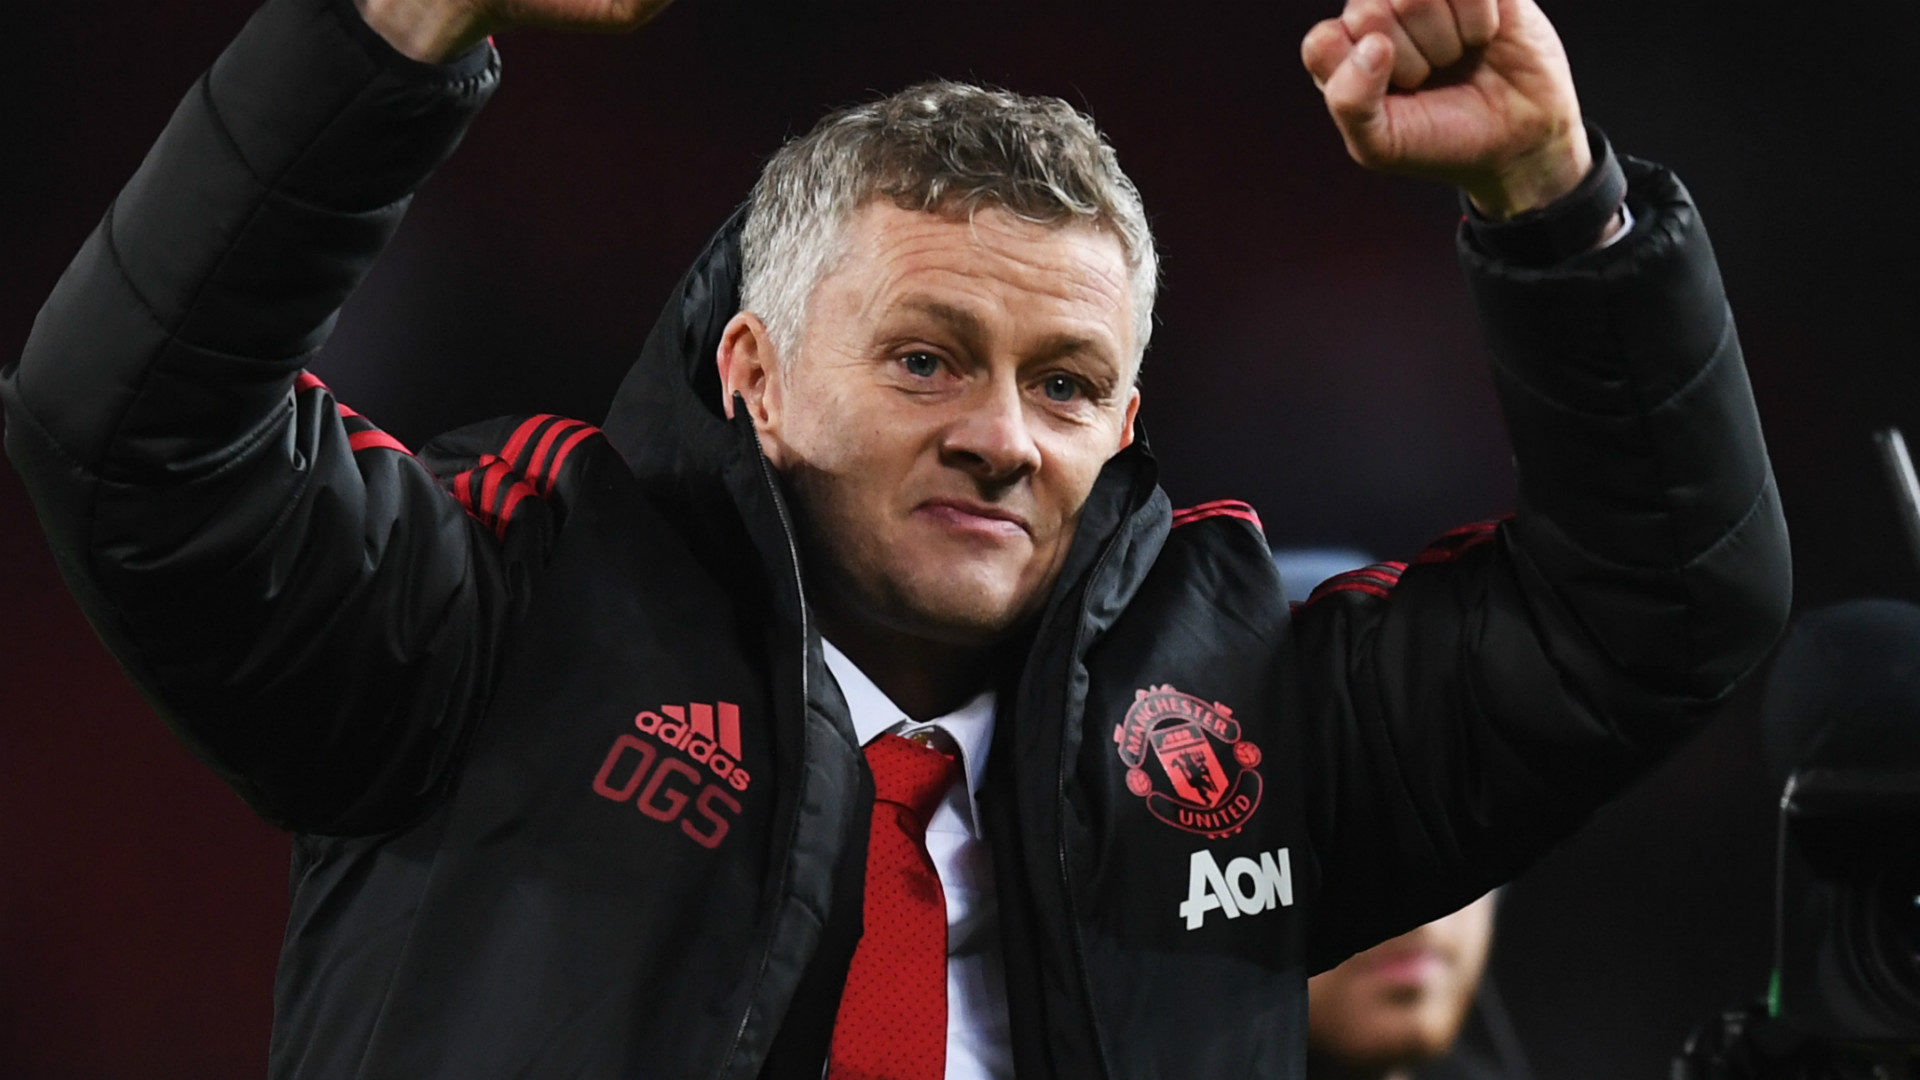 Manchester United's return to greatness begins with Europa League, says Solskjaer